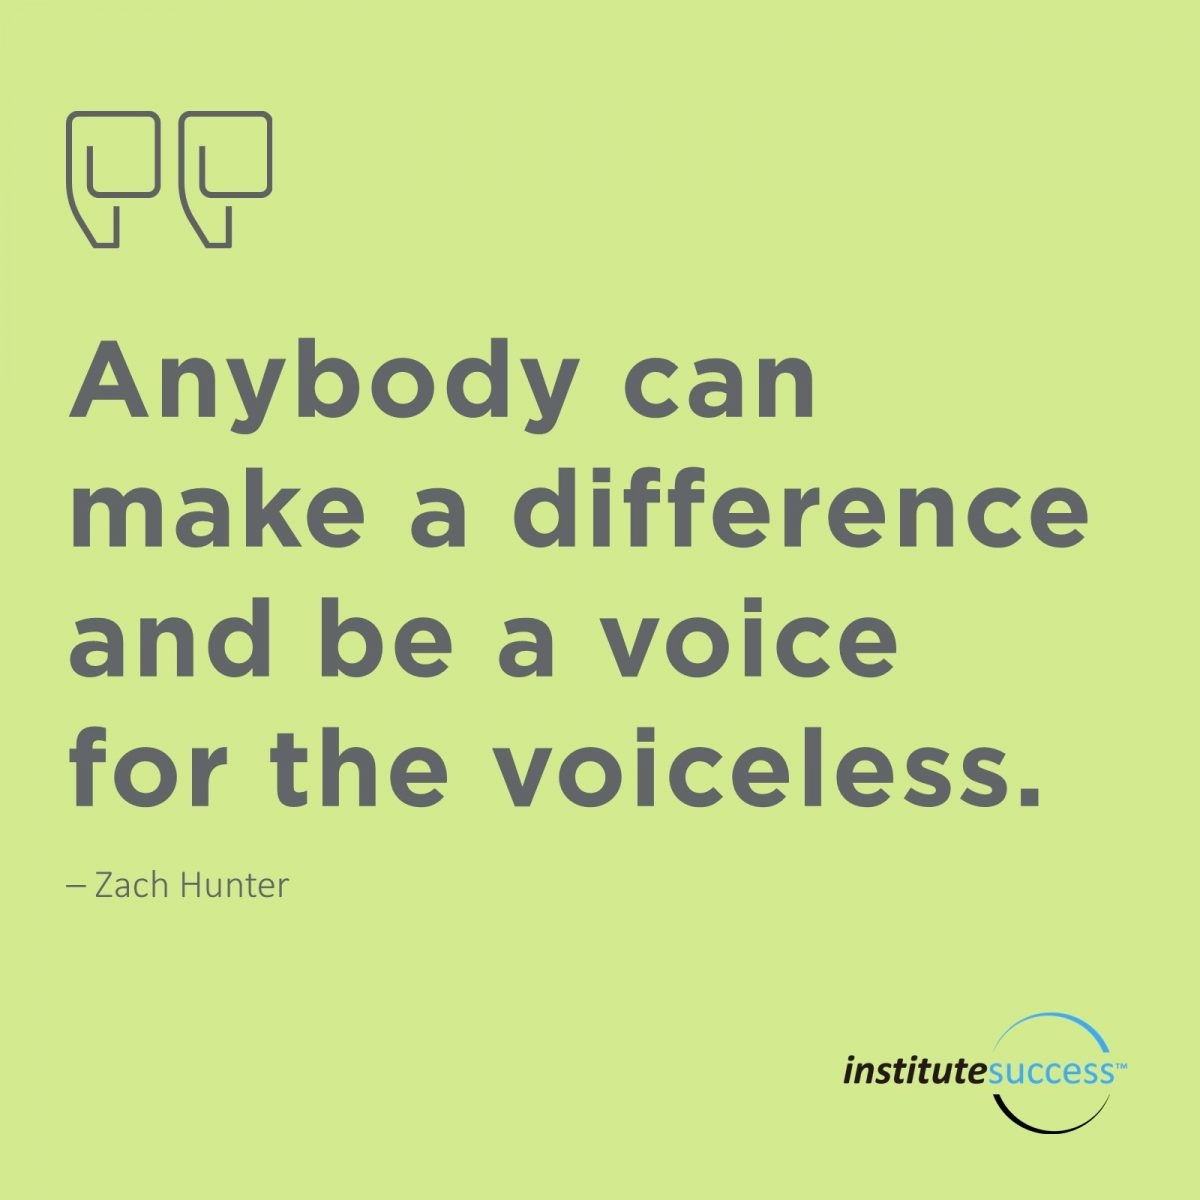 Anybody can make a difference and be voice for the voiceless.  Zach Hunter